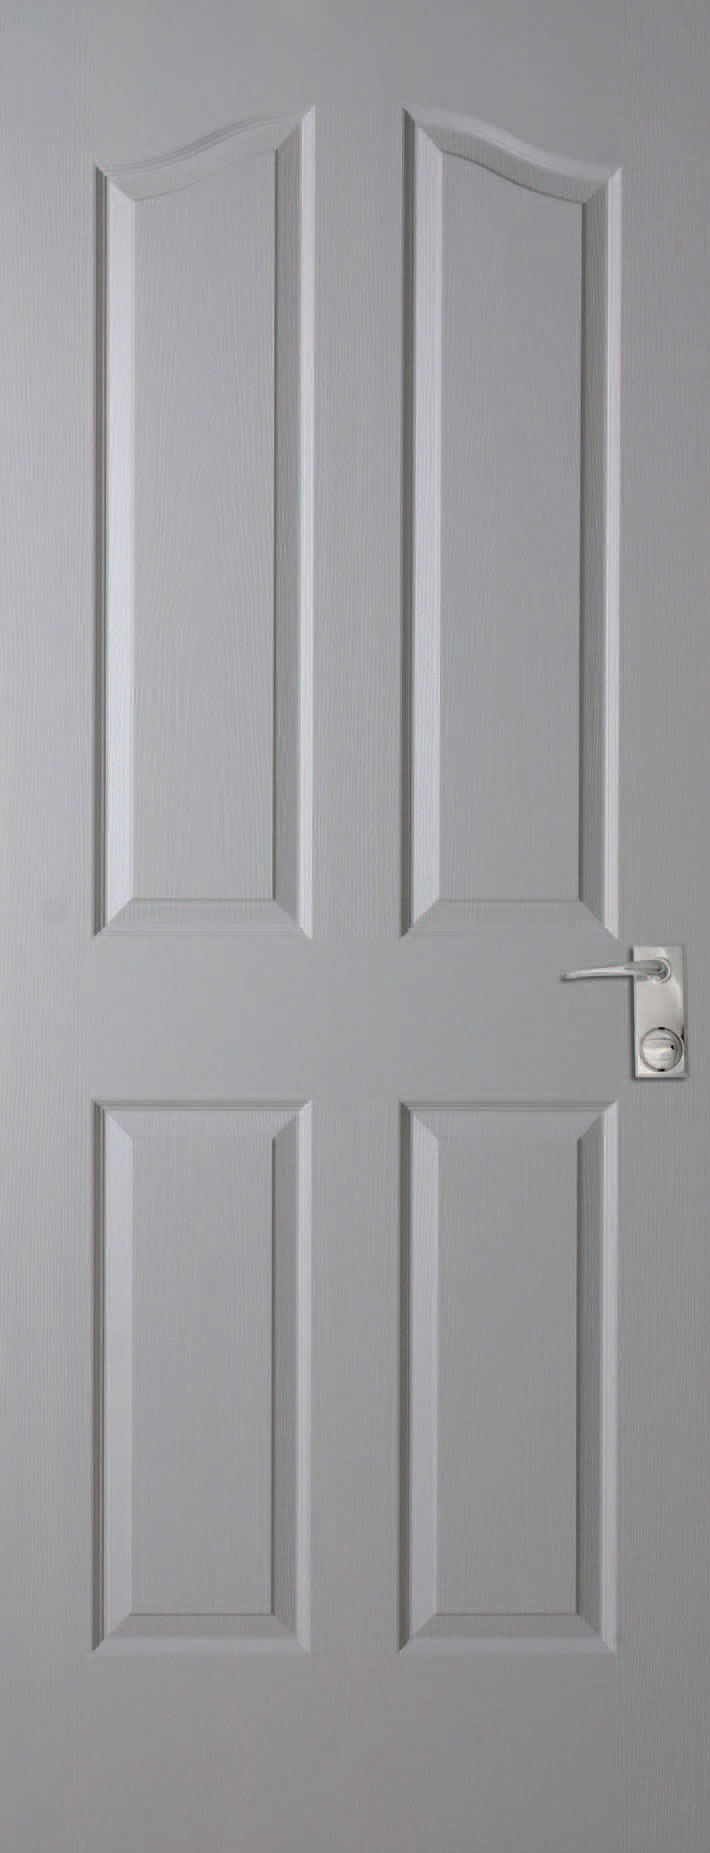 Rick 39 s doors products residential products moulded for Moulded panel doors